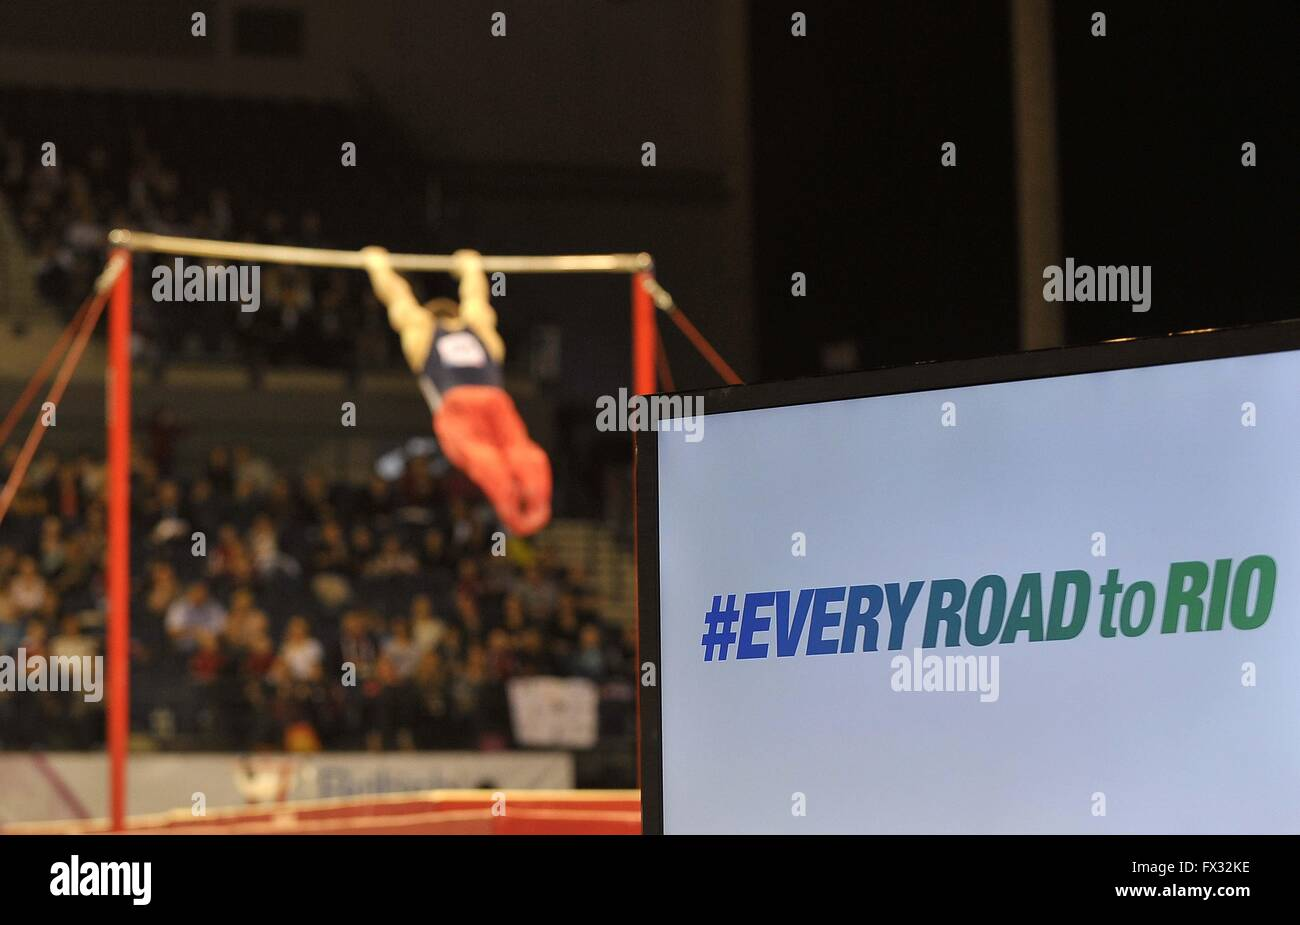 Liverpool, UK. 10th April, 2016. #everyroadtorio and the high bar. British Gymnastics Championships 2016. Echo Arena. Stock Photo